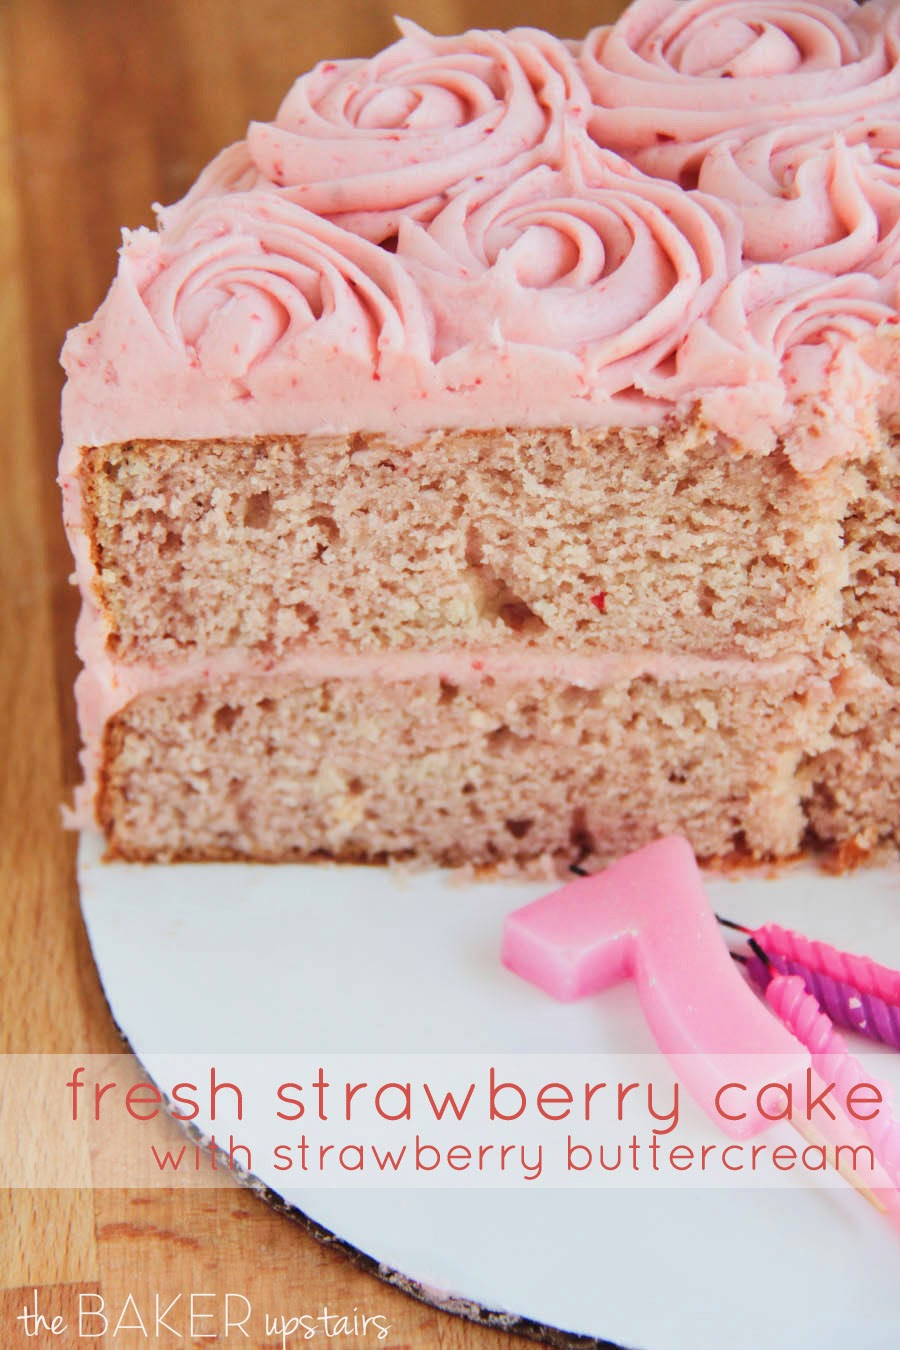 The Baker Upstairs fresh strawberry cake with strawberry buttercream